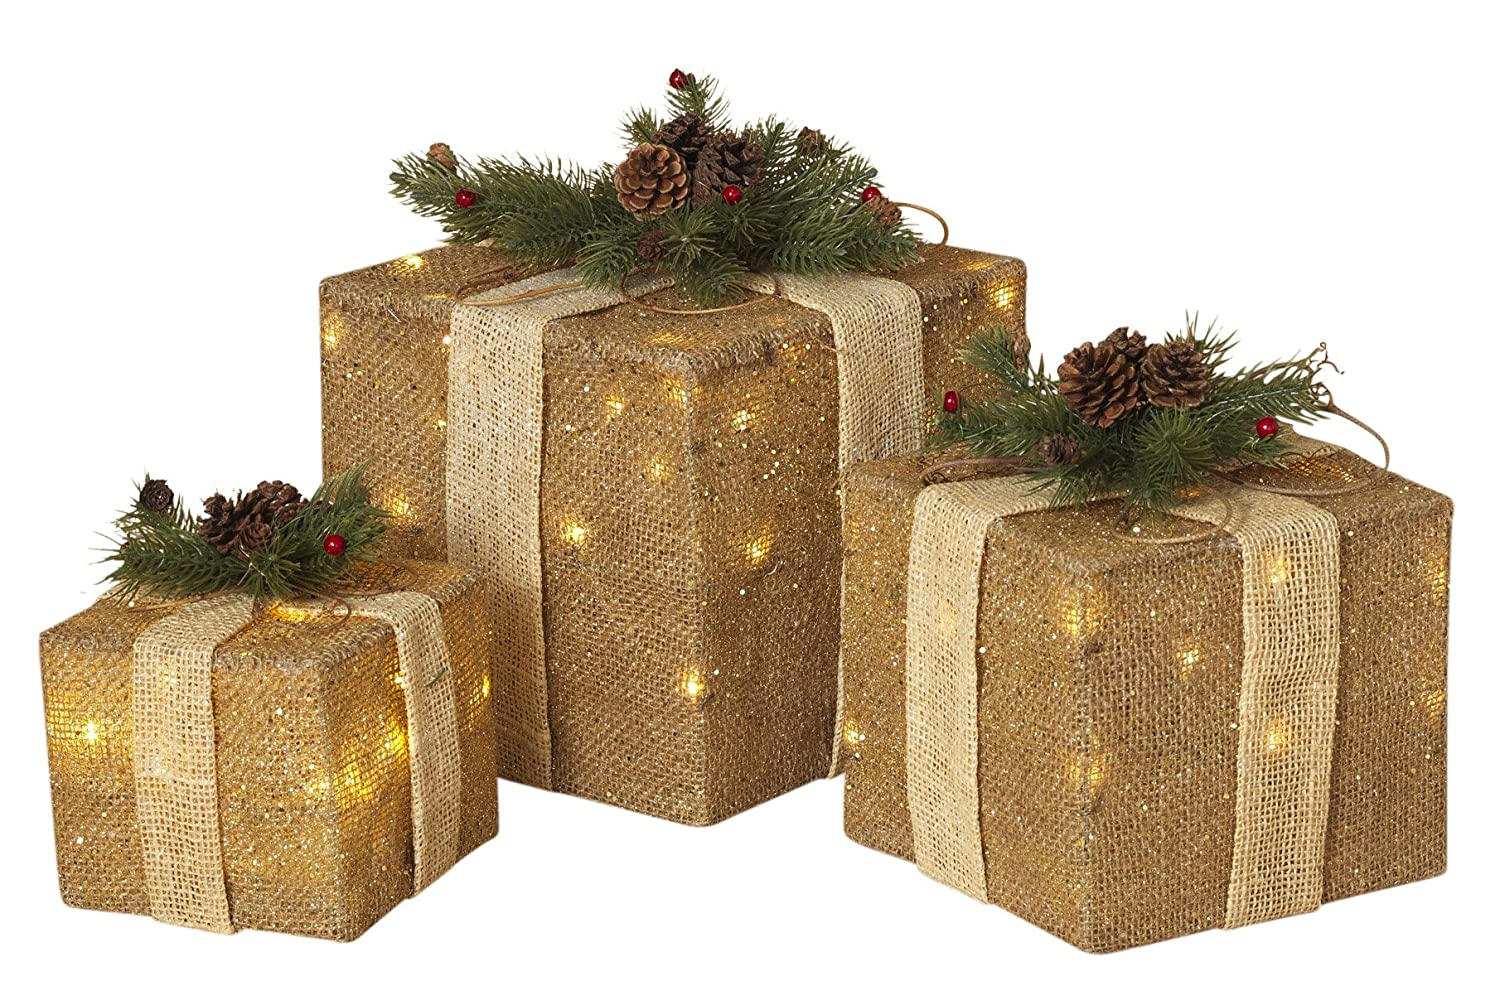 Lighted christmas gift boxes yard decor - Amazon Com Set Of 3 Large Lighted Burlap Holiday Gift Boxes Indoor Christmas Decoration Garden Outdoor